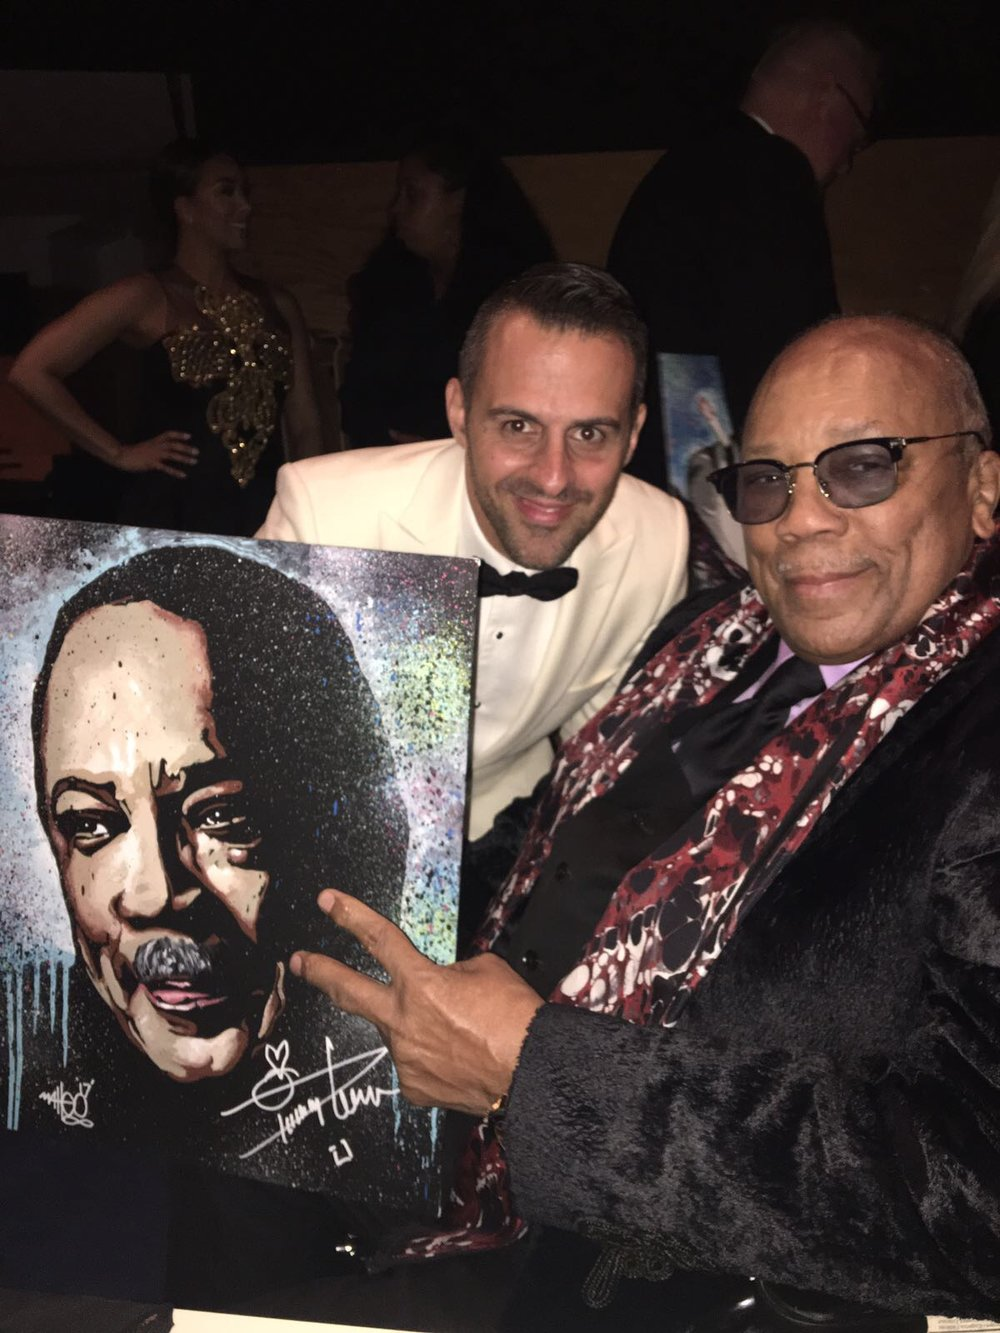 Quincy Jones x Matteo Charles